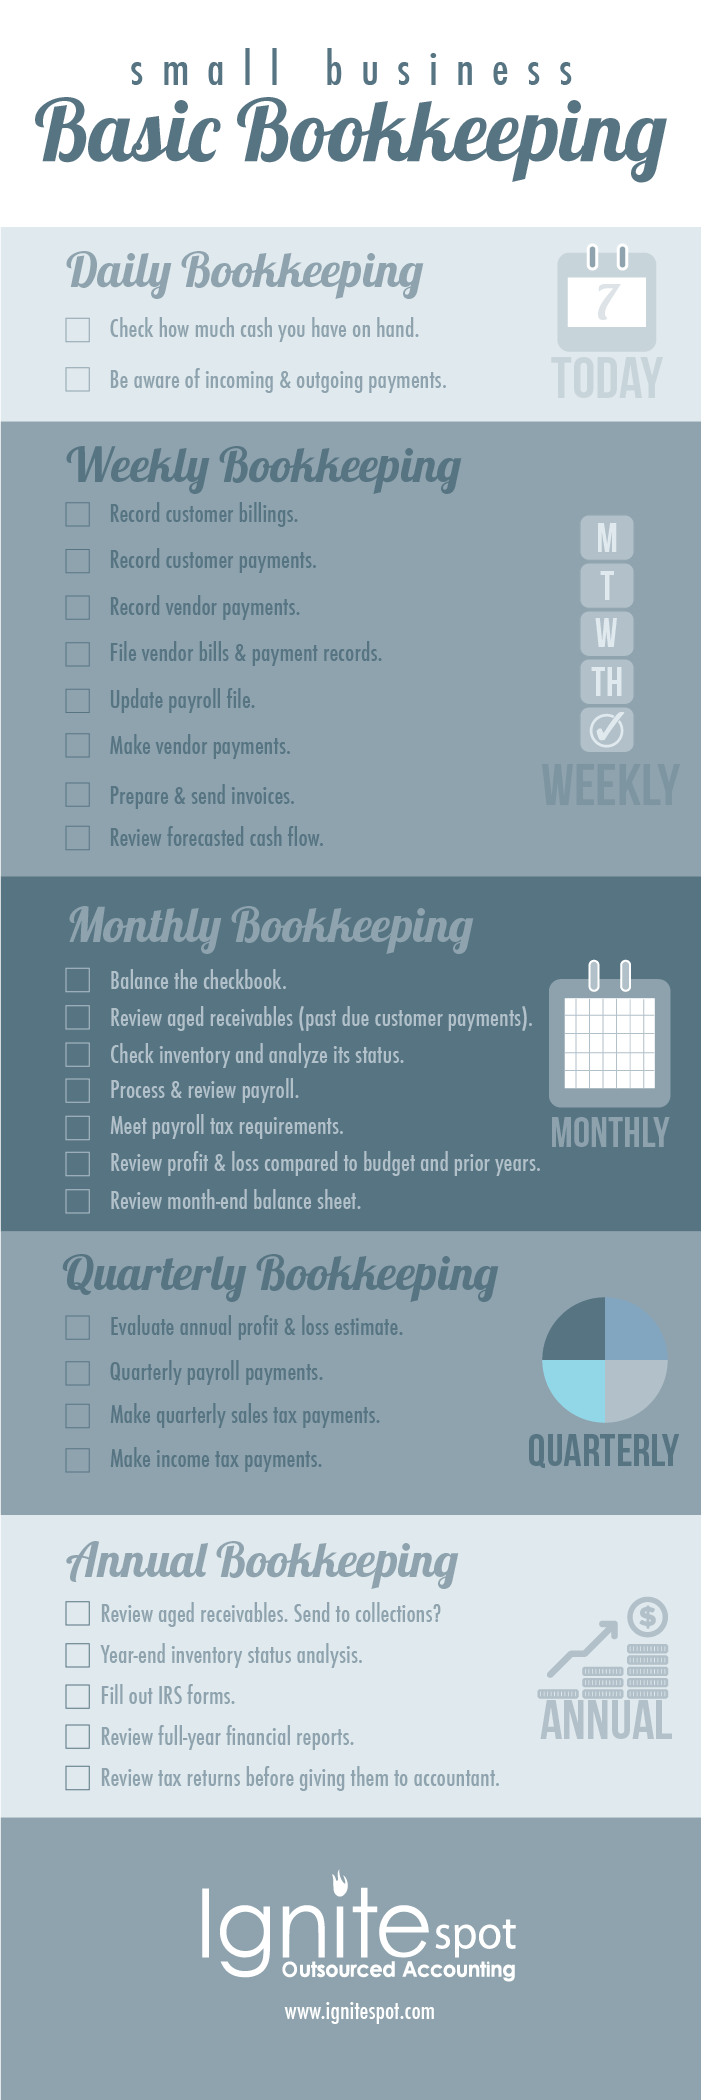 virtual-bookkeeping-checklist | accounts payable | Business tips